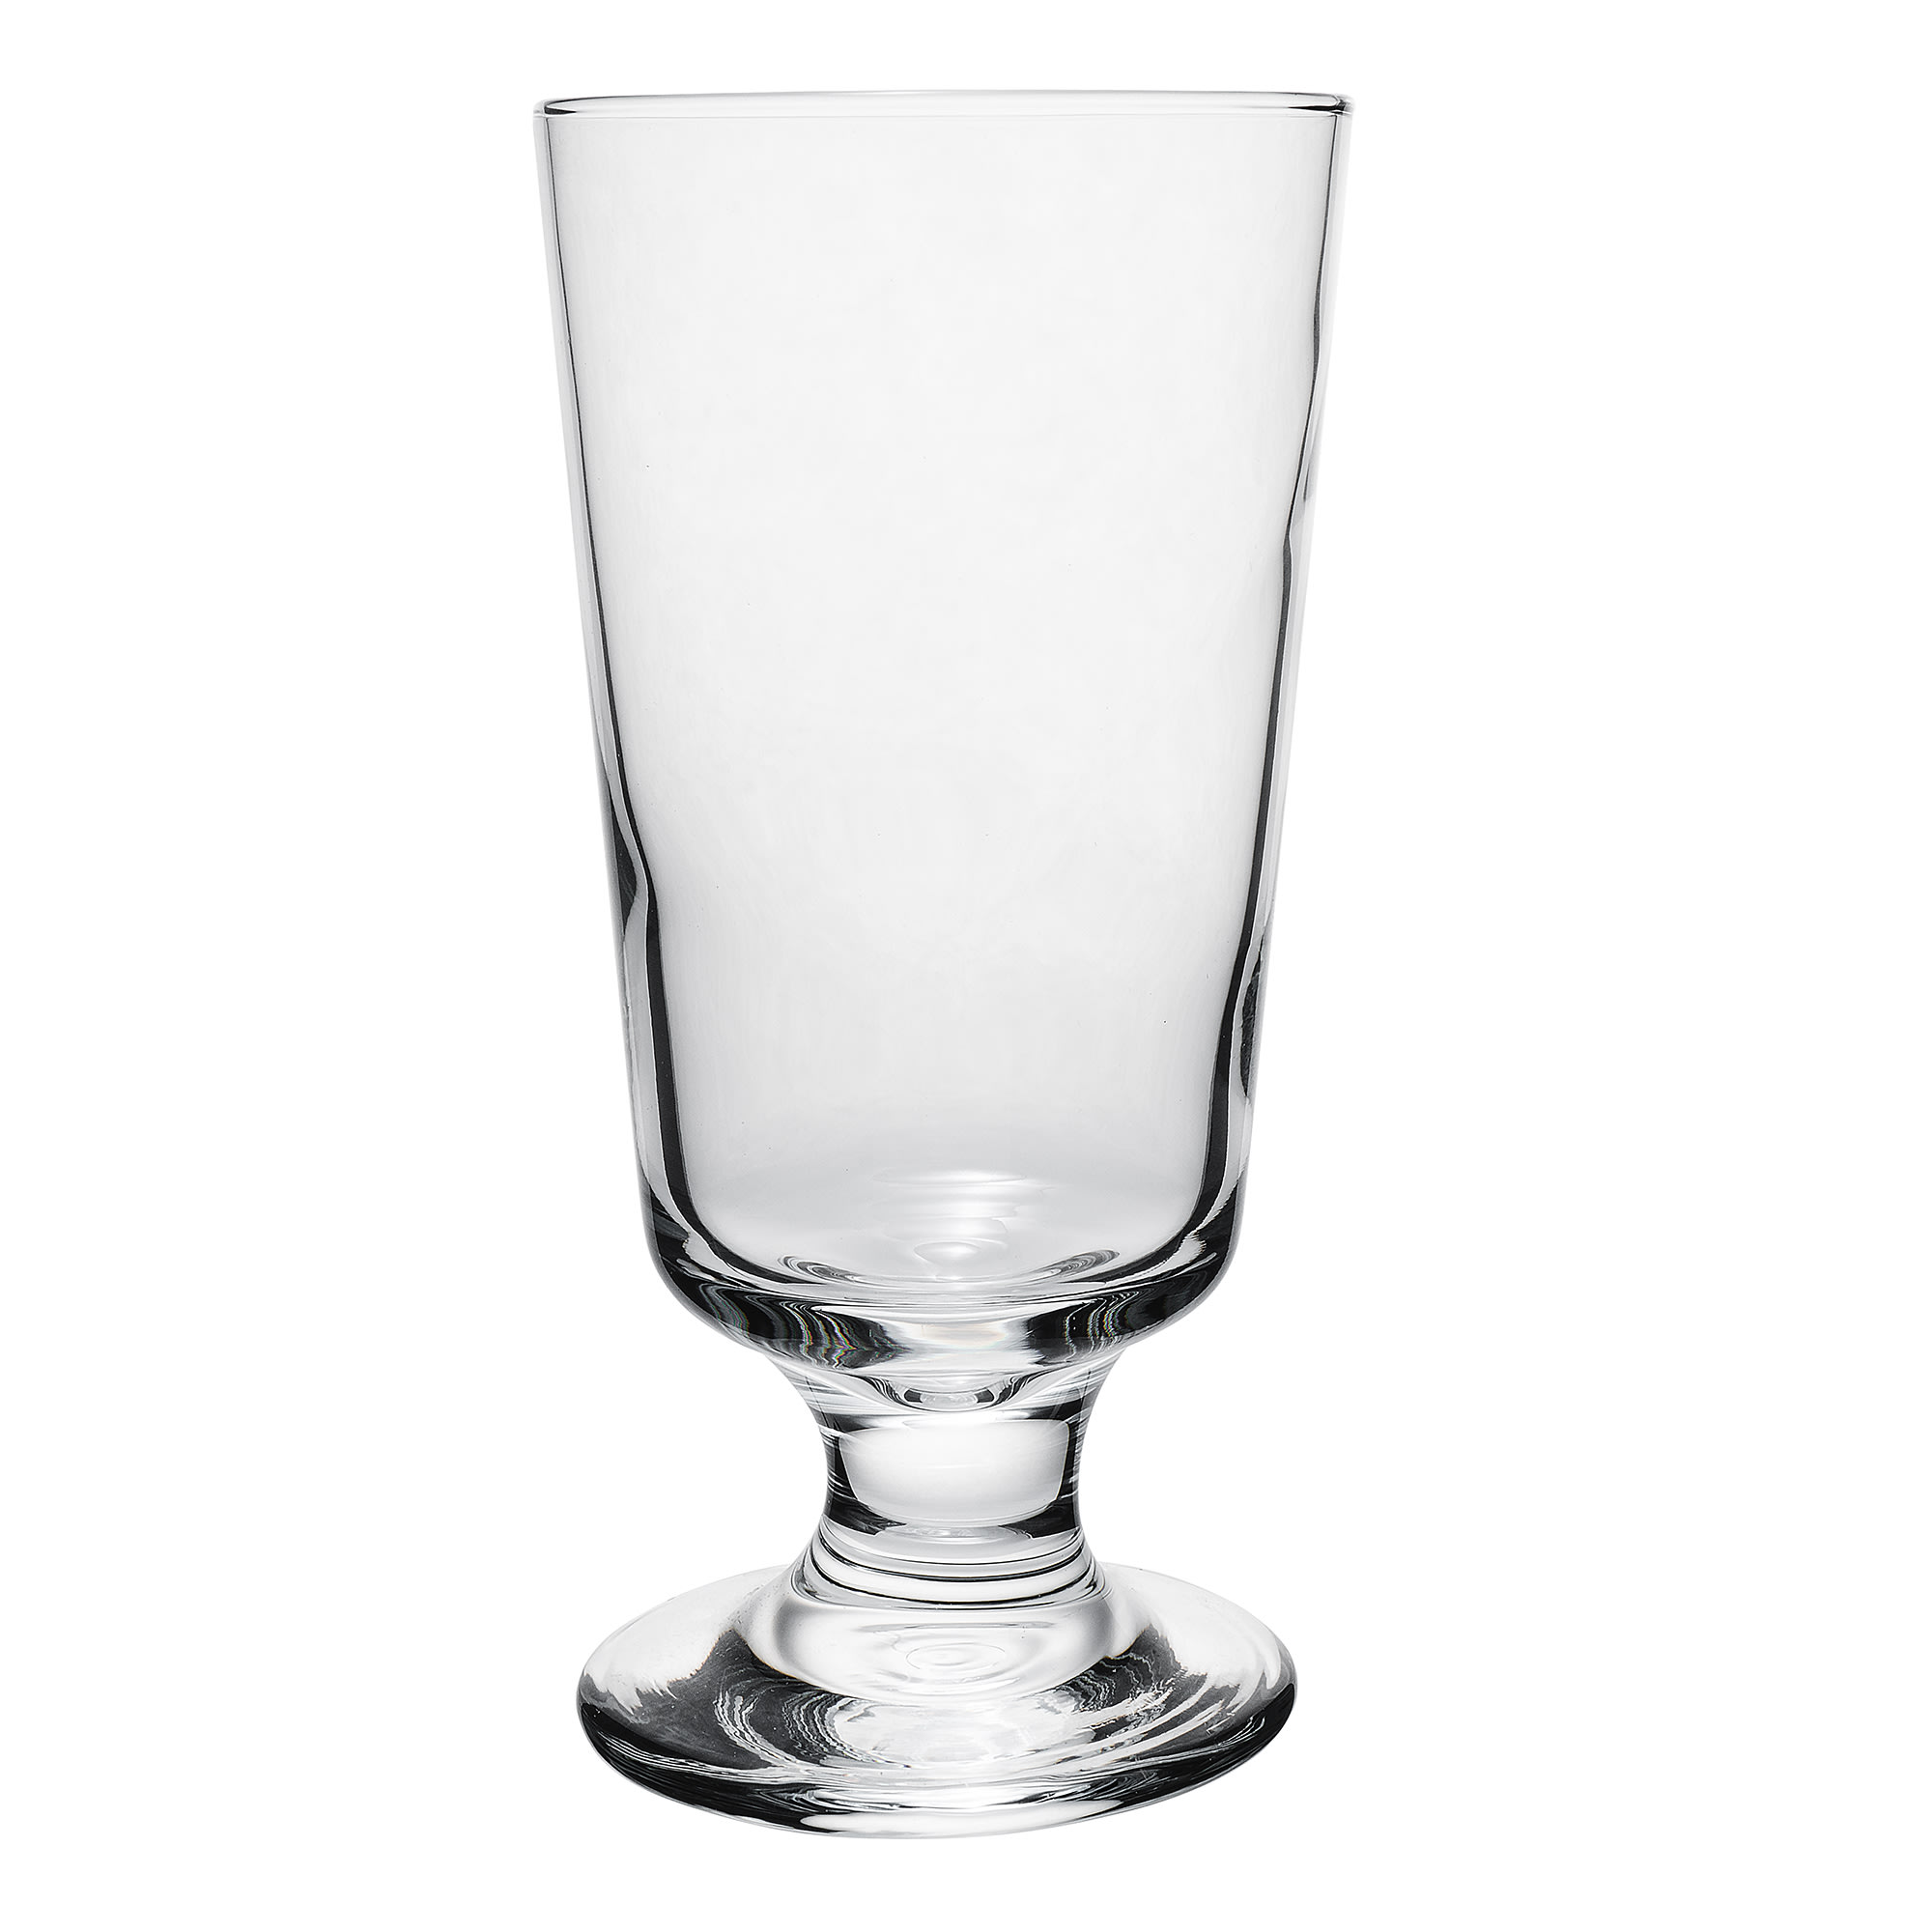 Libbey 3737 10 oz Embassy Hi-Ball Glass - Safedge Rim & Foot Guarantee